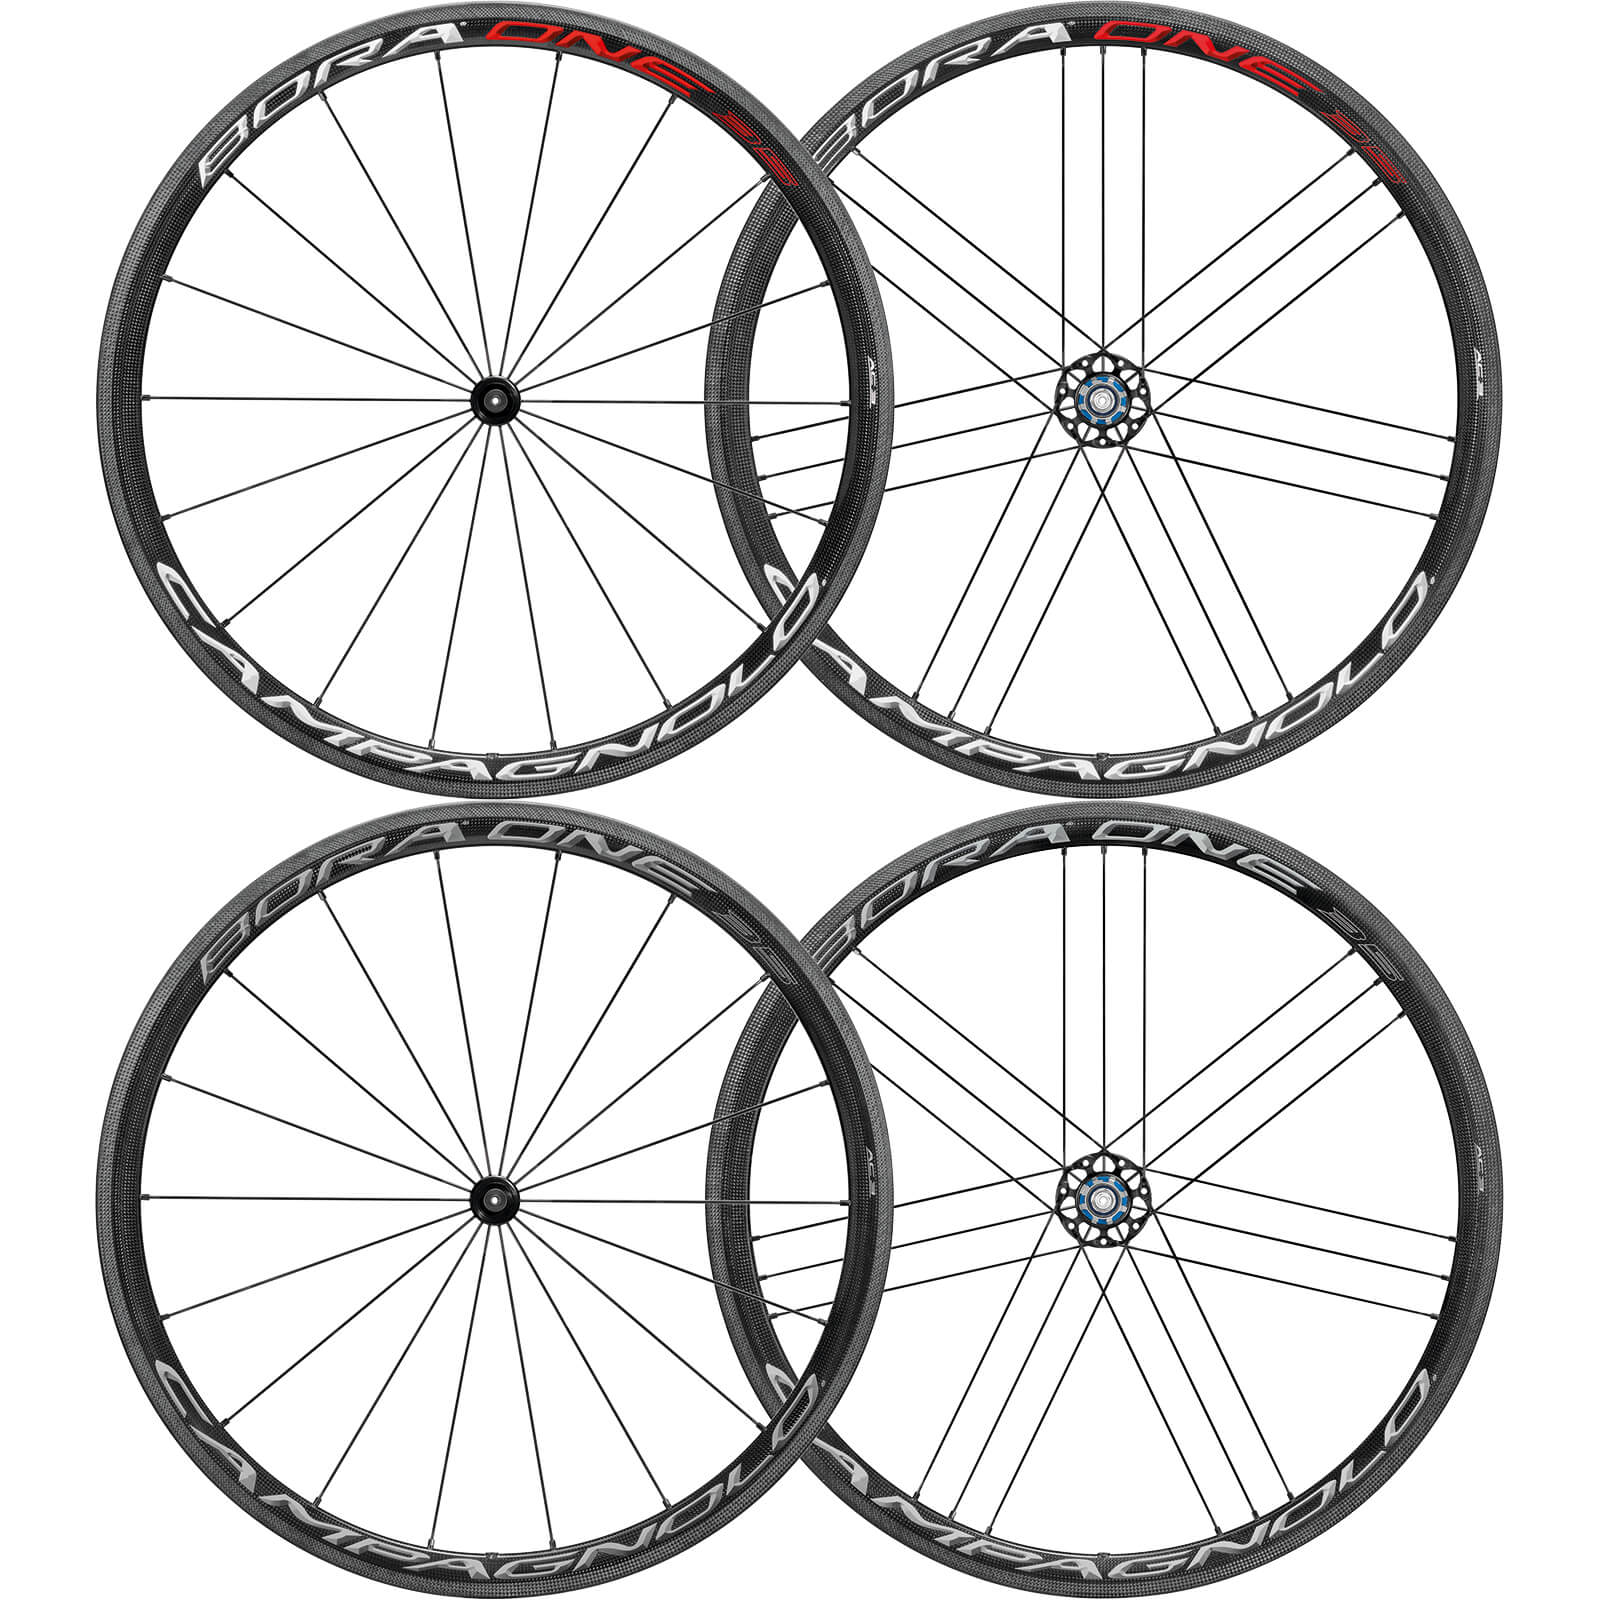 CAMPAGNOLO BORA ONE(ボーラワン) 35 クリンチャー ホイールセット - 2018